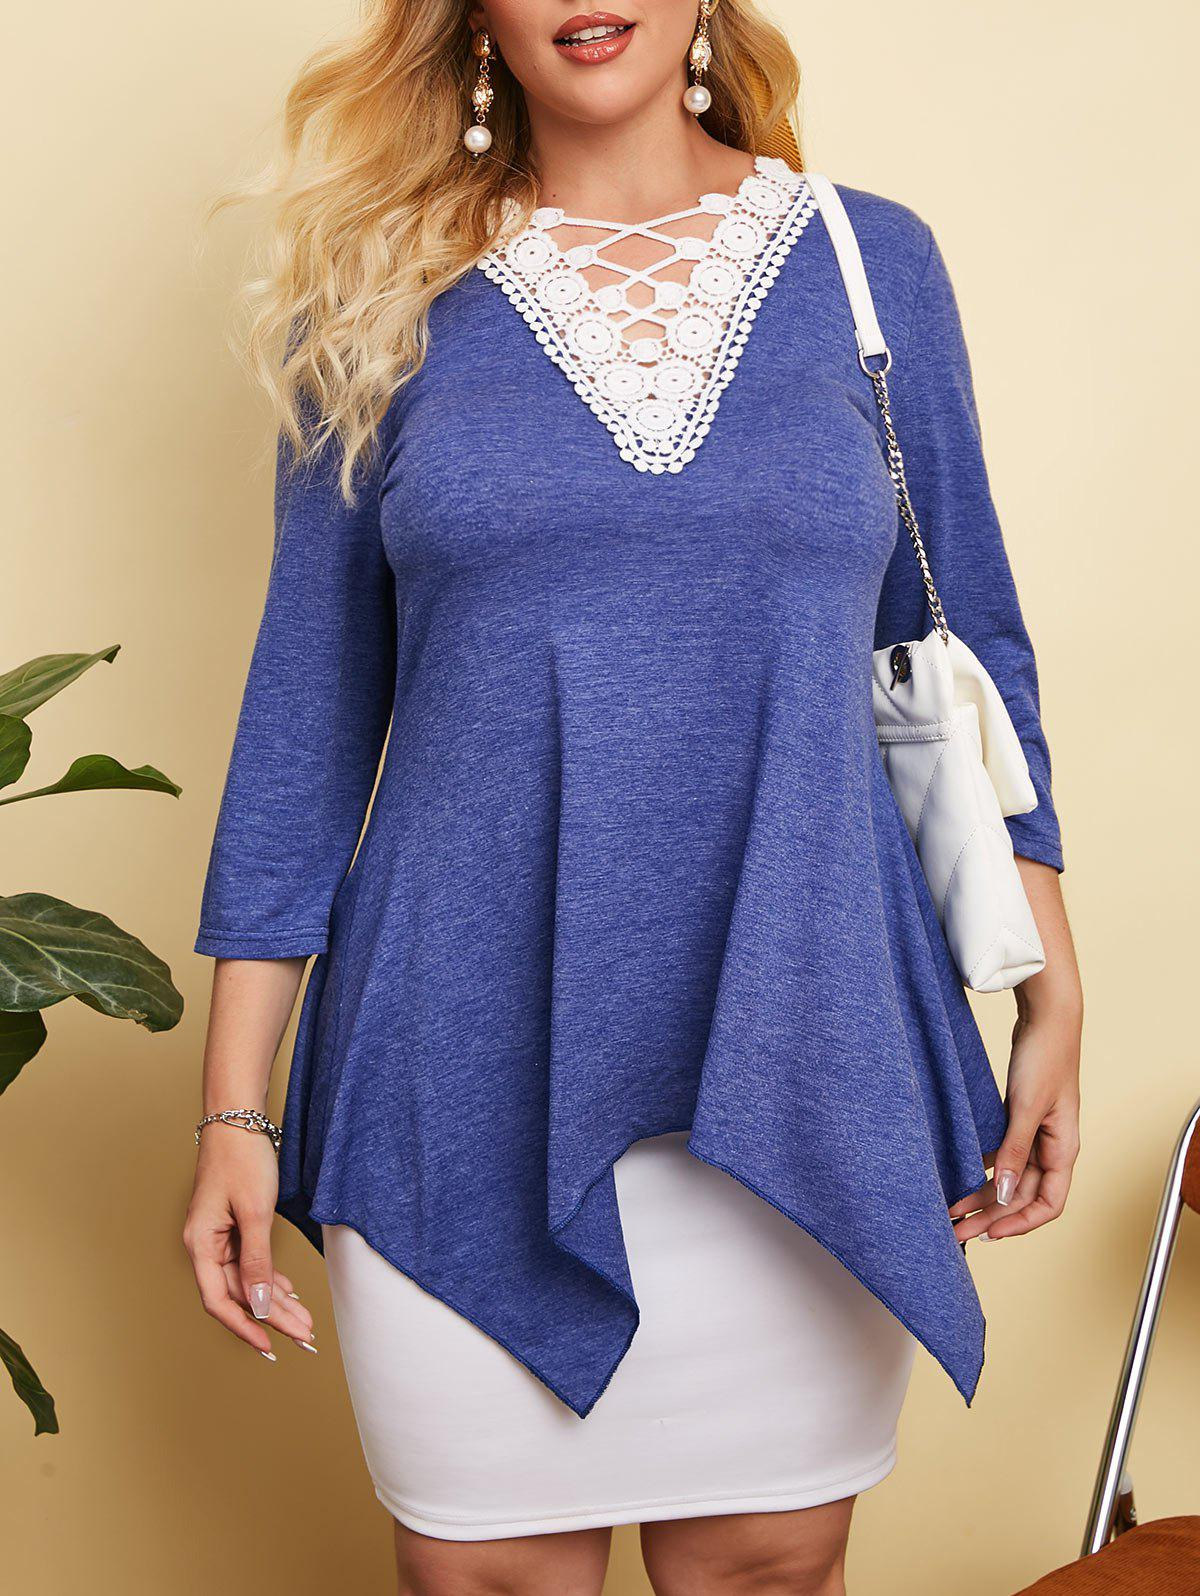 Crochet Lace Panel Heathered Plus Size Top - BLUE 5X